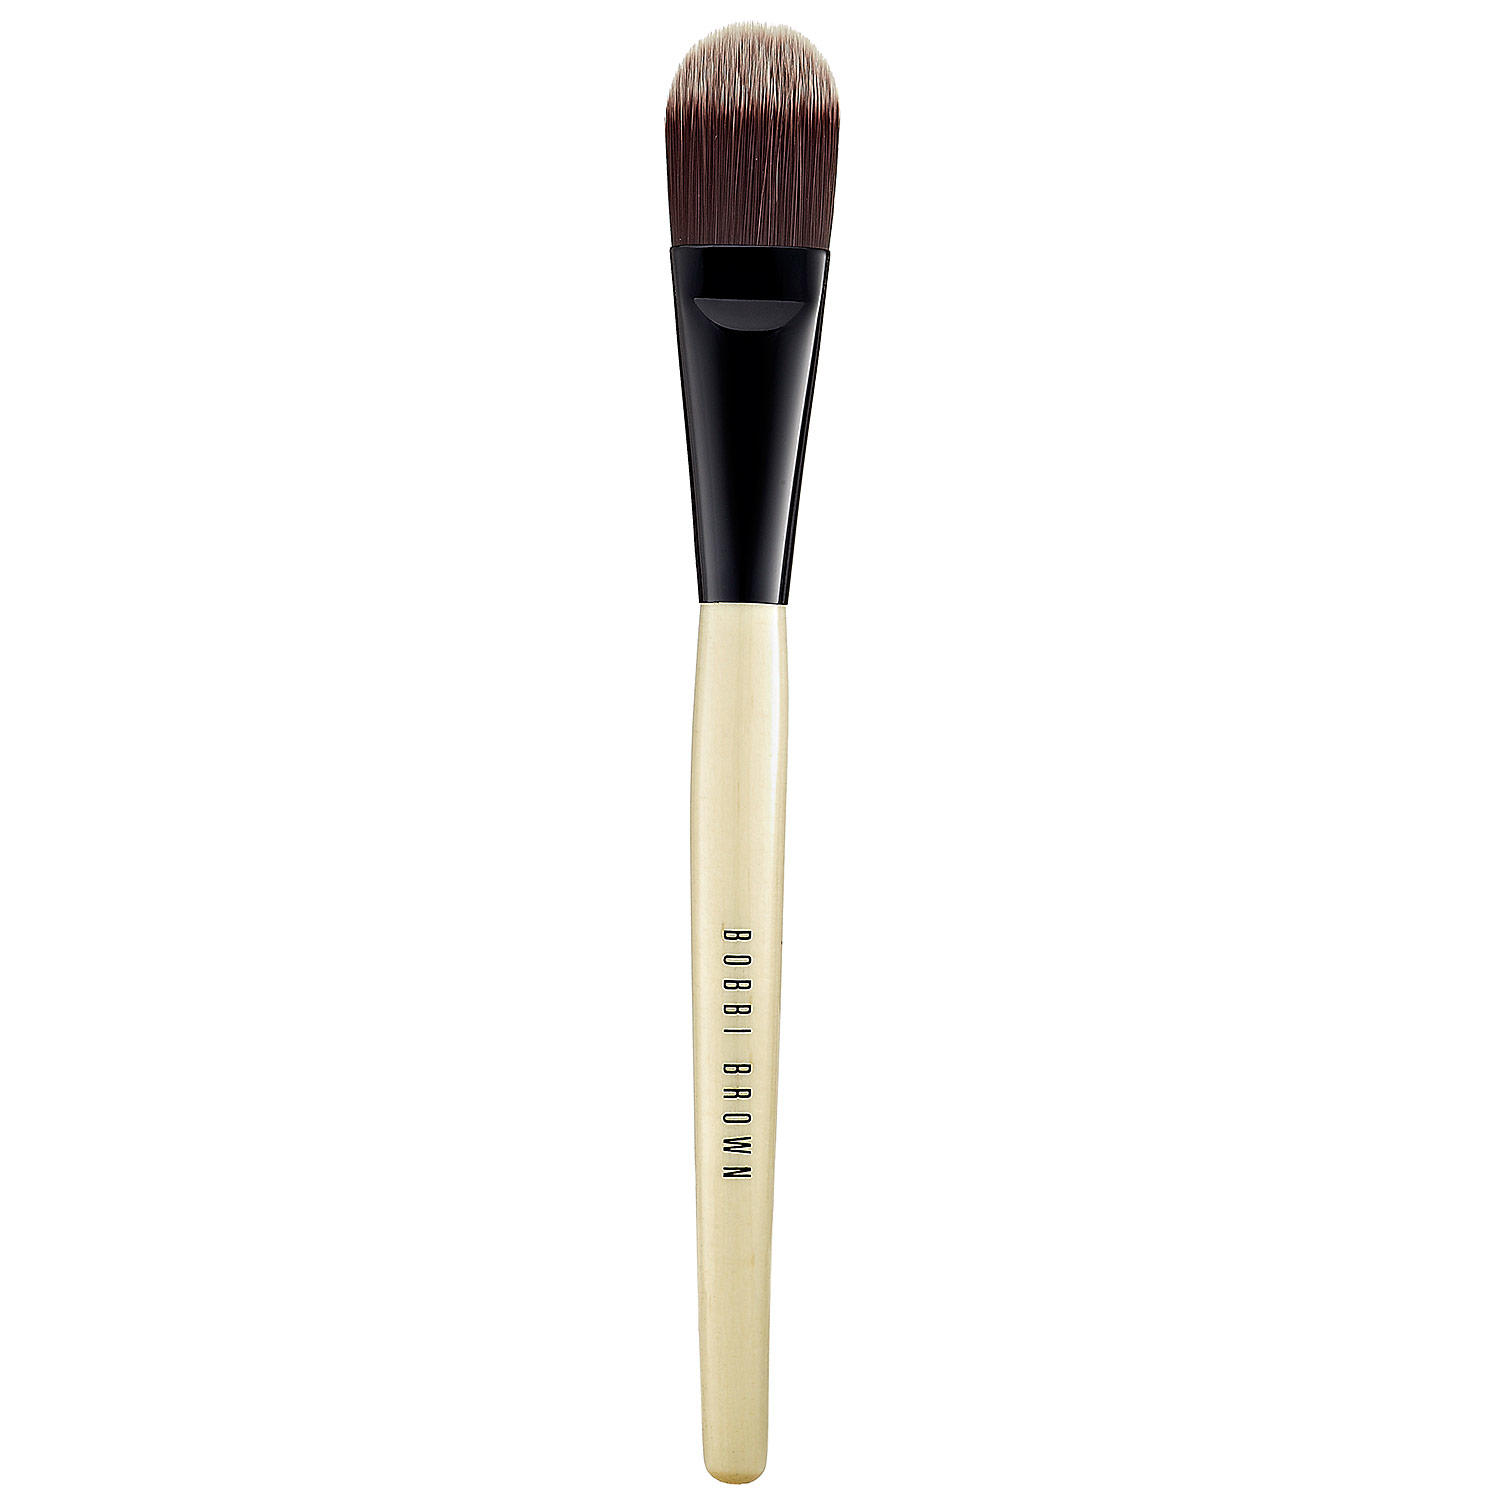 Bobbi Brown Foundation Face Brush